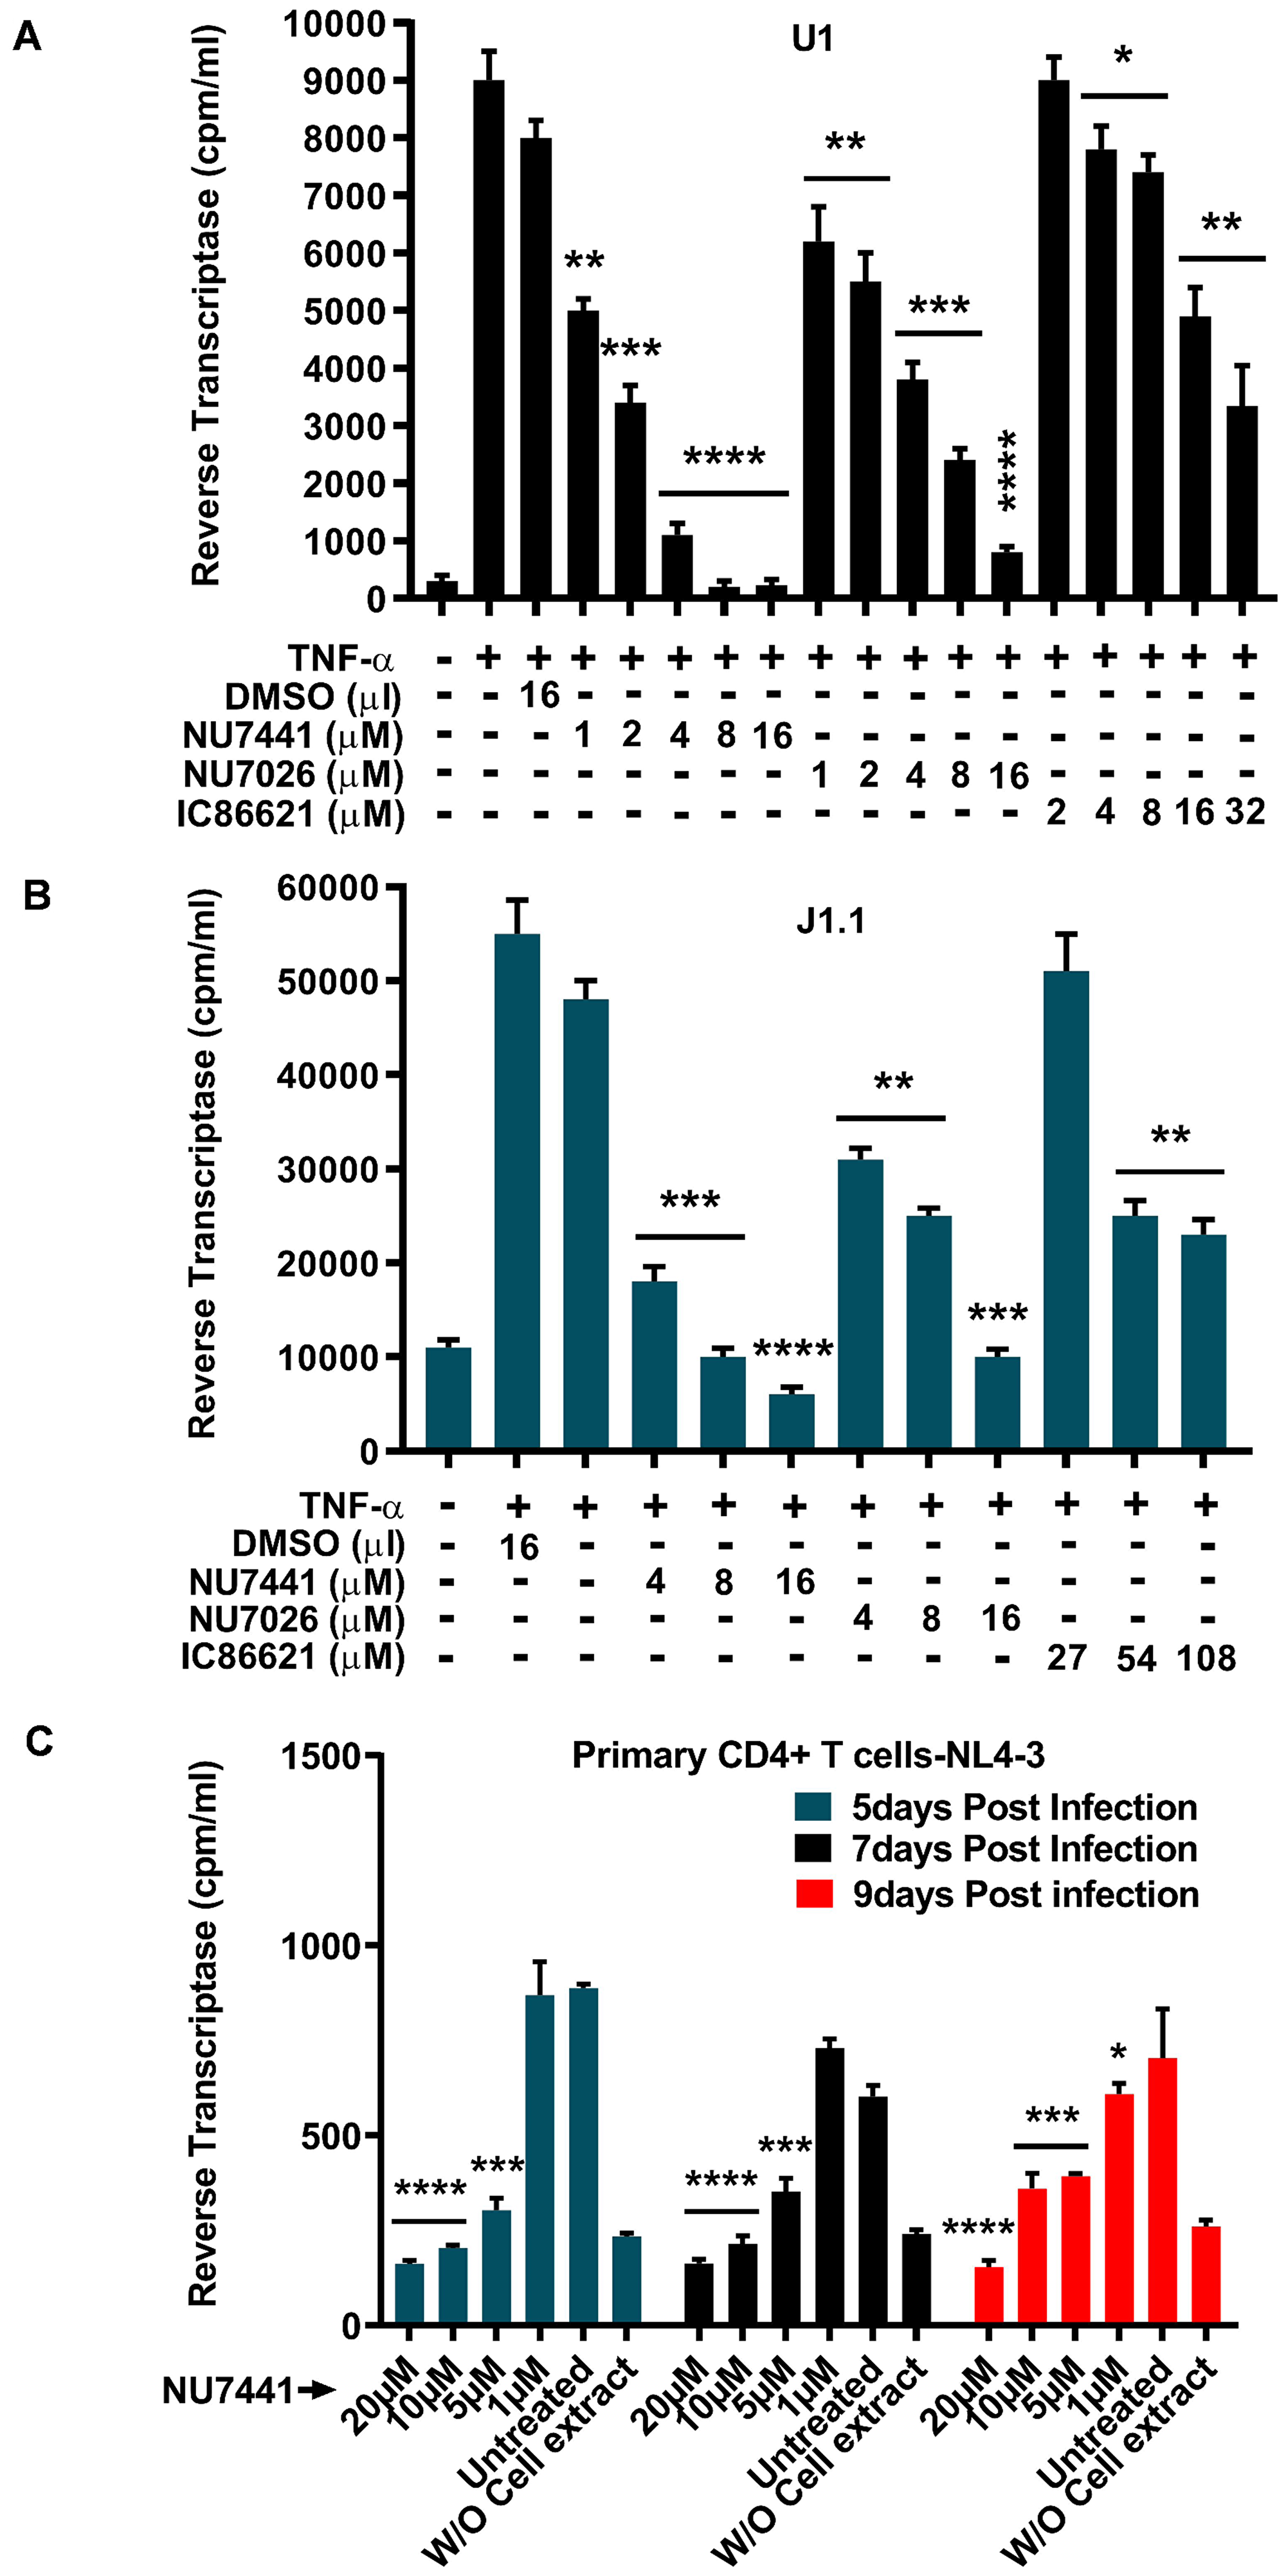 DNA-PK inhibitors drastically impair latent proviral reactivation and HIV replication.